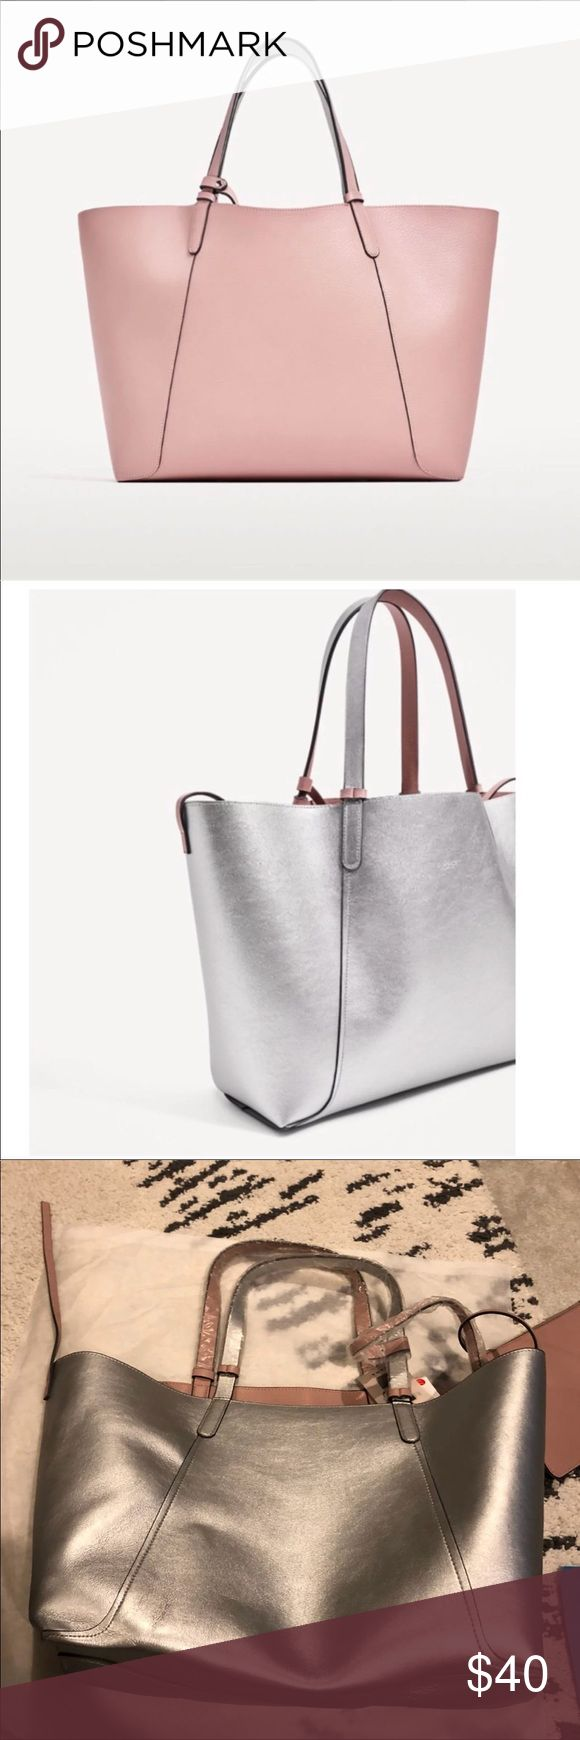 New Zara Reversible pink silver tote bag! Brand New Zara Tote Bag with pouch and dustbag. It's like 2 bags for the price of 1! Great for work and school! Silver and pink. VERY roomy! Pet free and smoke free home! Zara Bags Totes